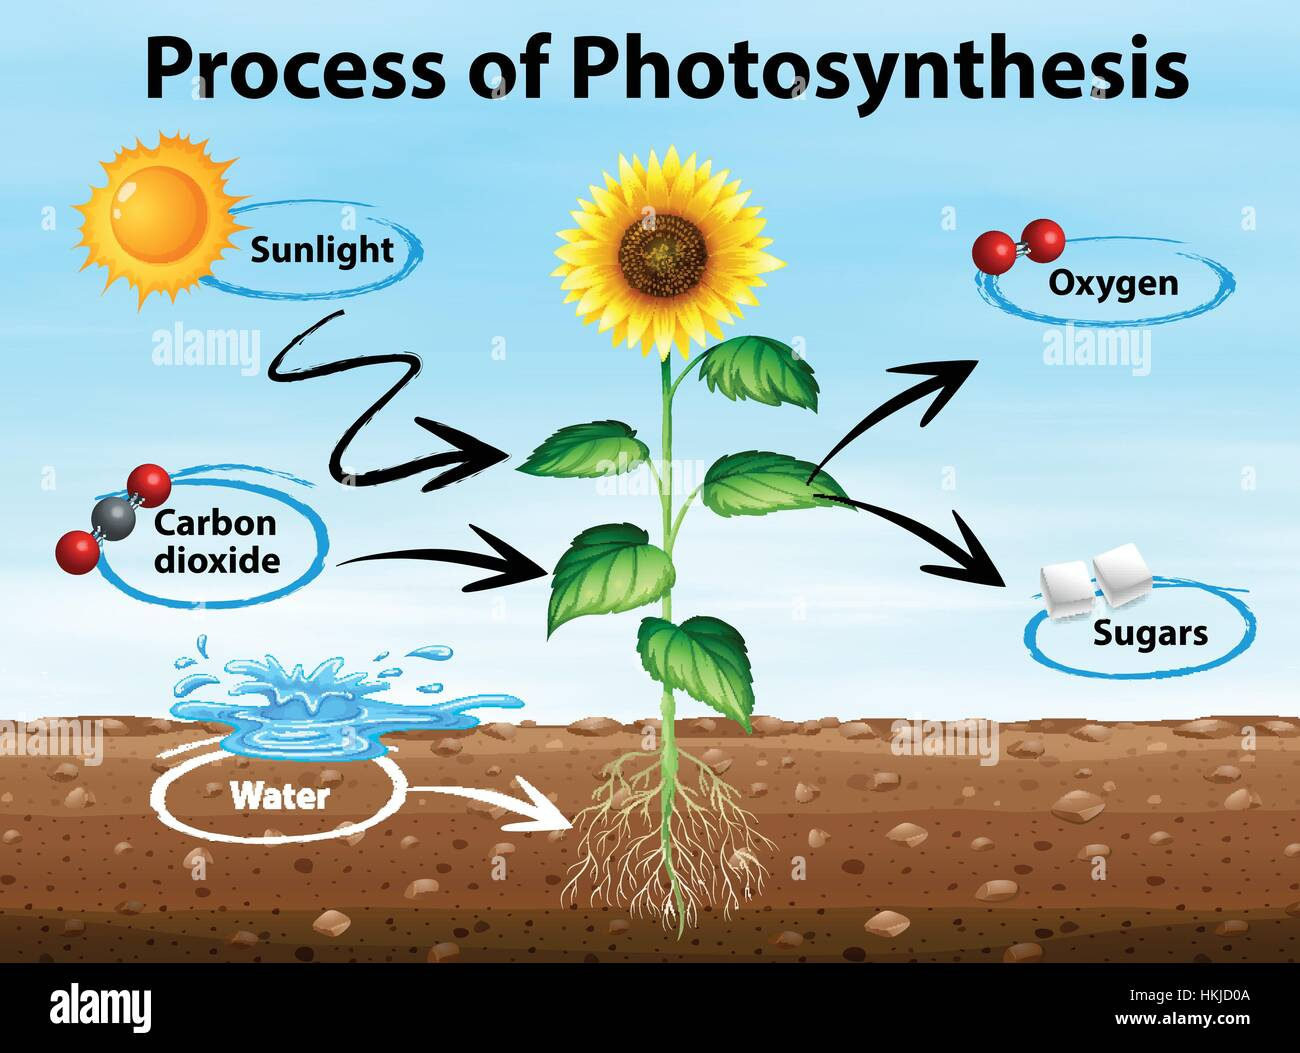 Diagram showing process of photosynthesis illustration stock diagram showing process of photosynthesis illustration ccuart Image collections